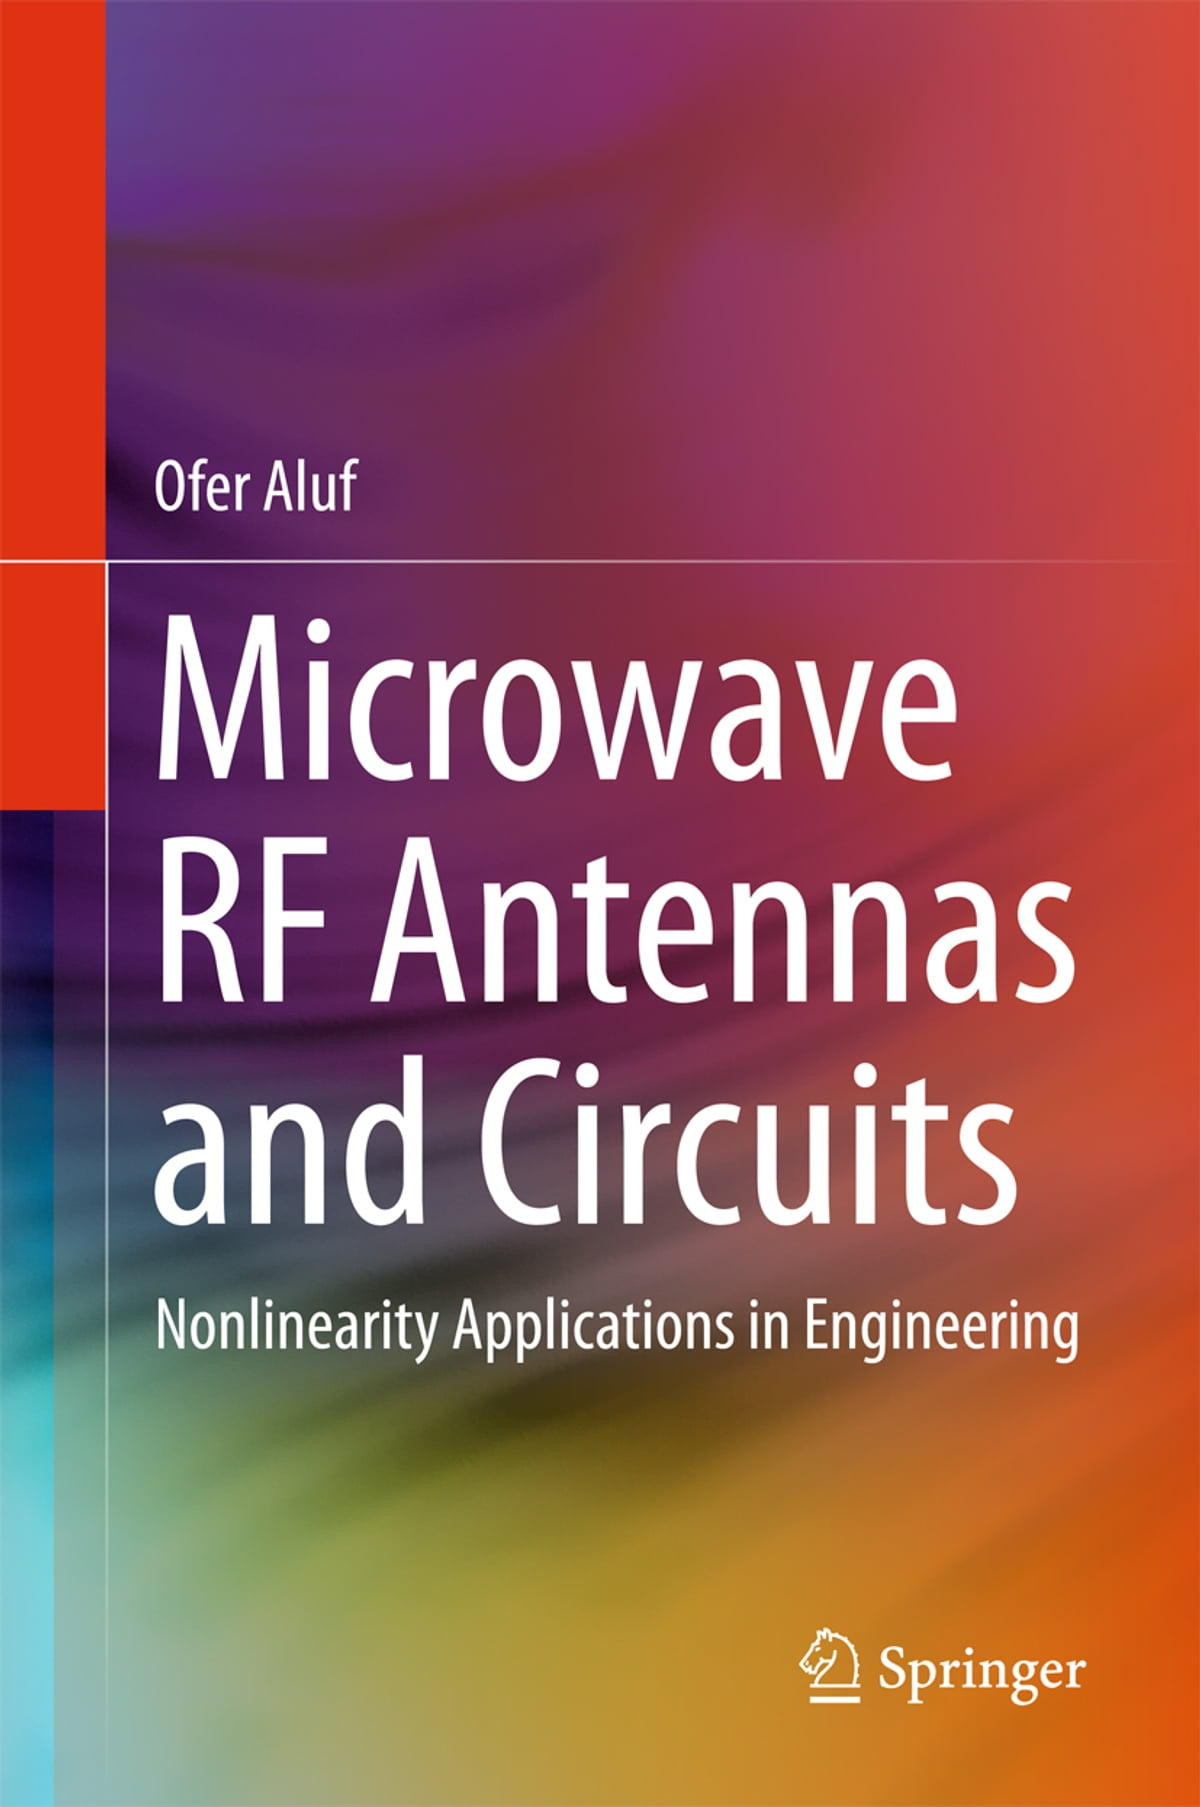 Microwave Rf Antennas And Circuits Ebook By Ofer Aluf Electronic Devices Schaums Pdf 9783319454276 Rakuten Kobo